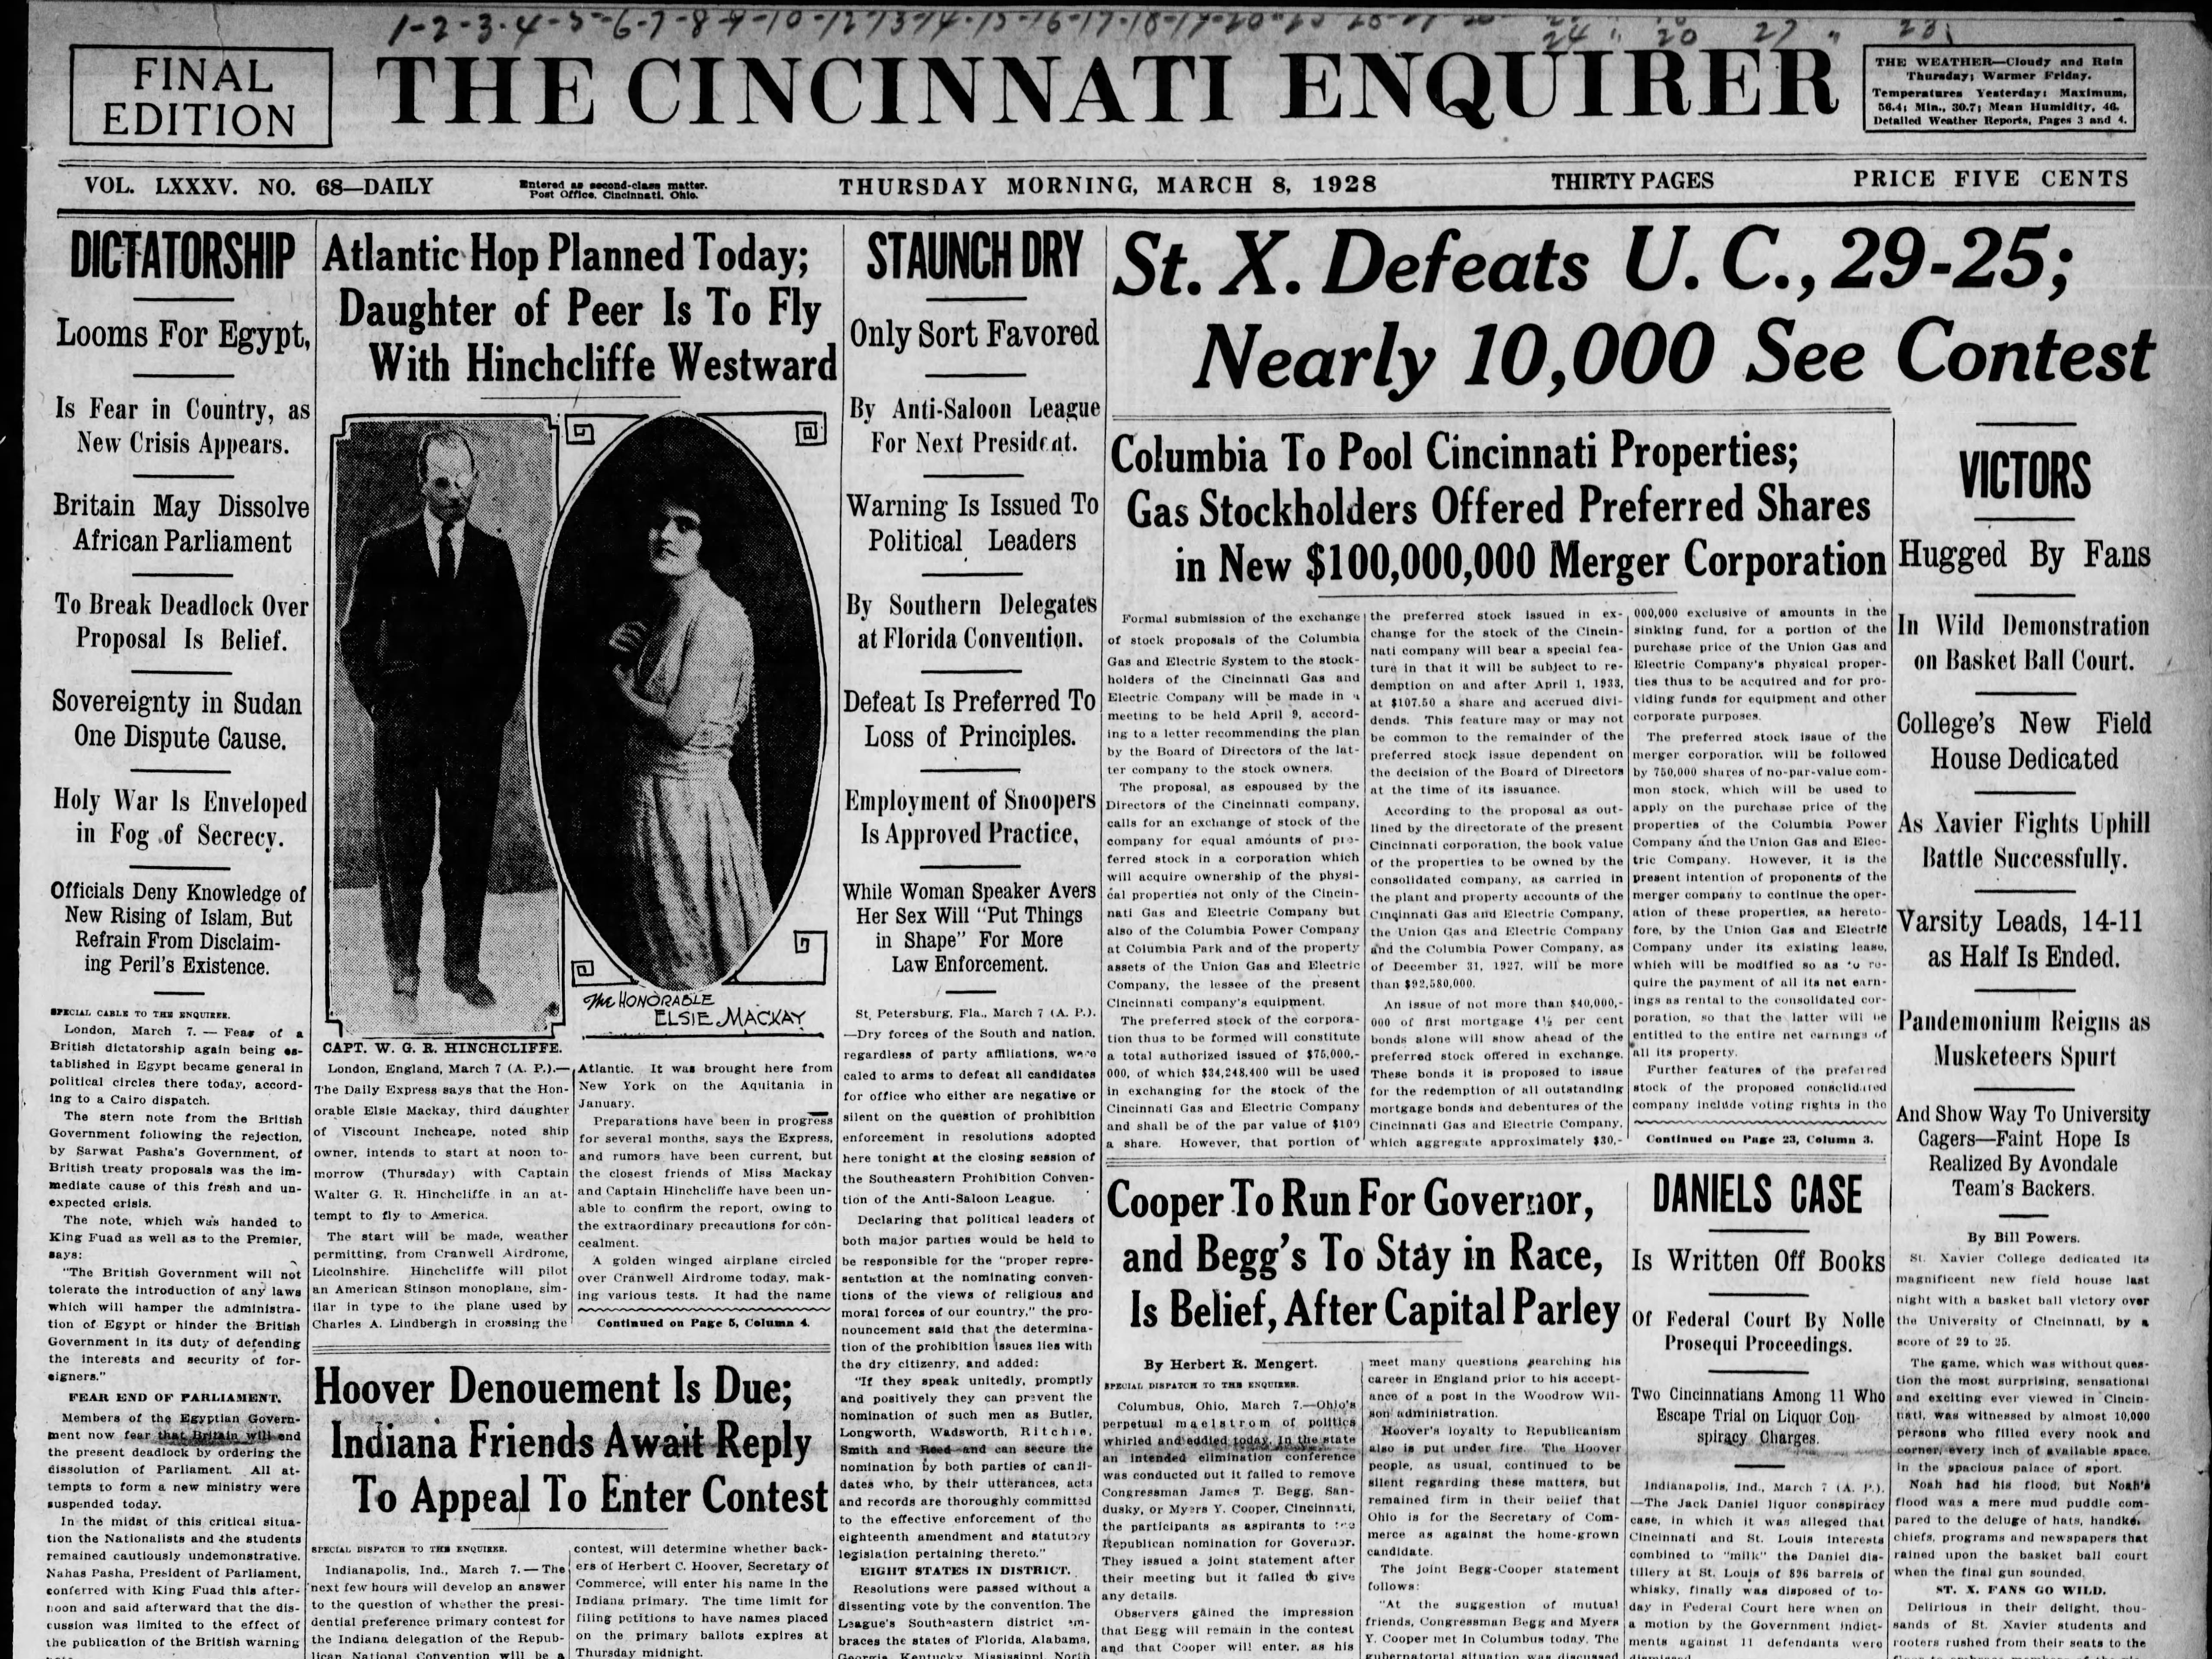 Nearly 10,000 fans turned out to see Xavier defeat UC in the first meeting between the two programs in 1928.